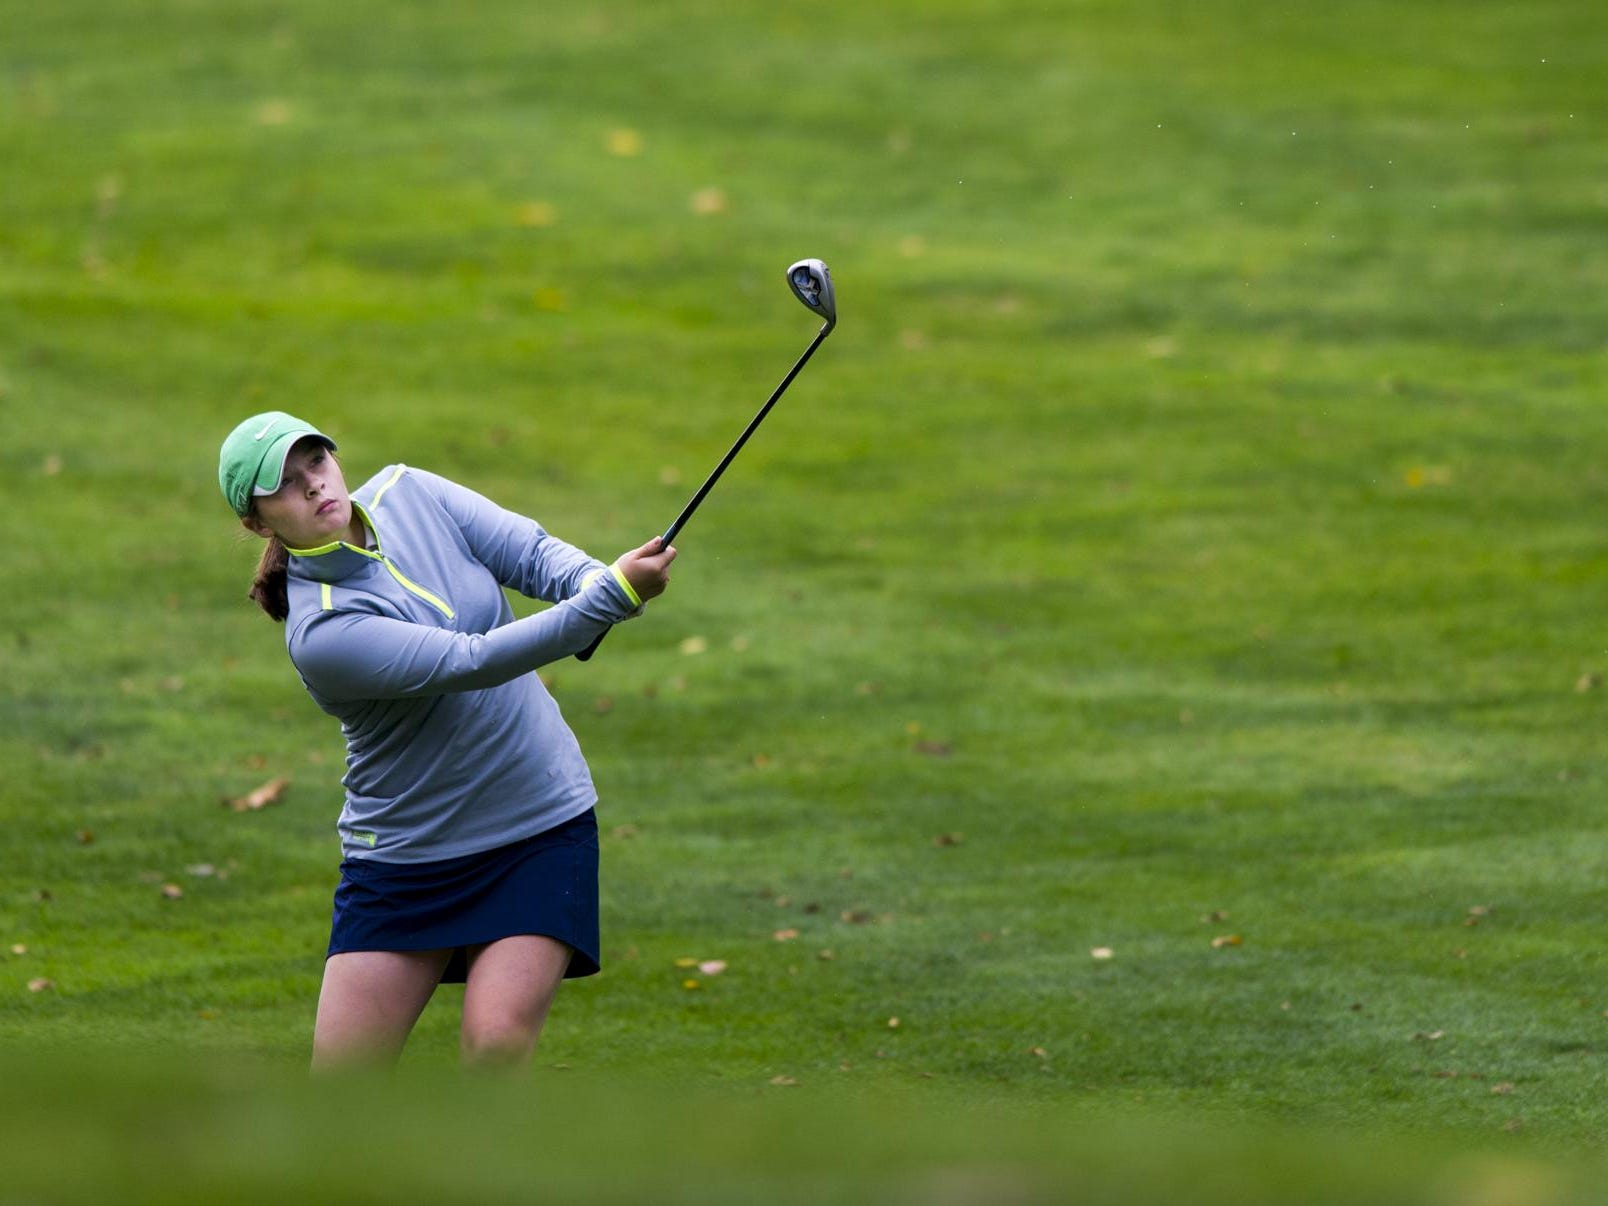 Cathedral golfer Betsy Werner knocks her ball onto the green during the IHSAA girls golf regional hosted by Lapel at Edgewood Golf Course in Anderson, Ind., Sept. 26, 2015.